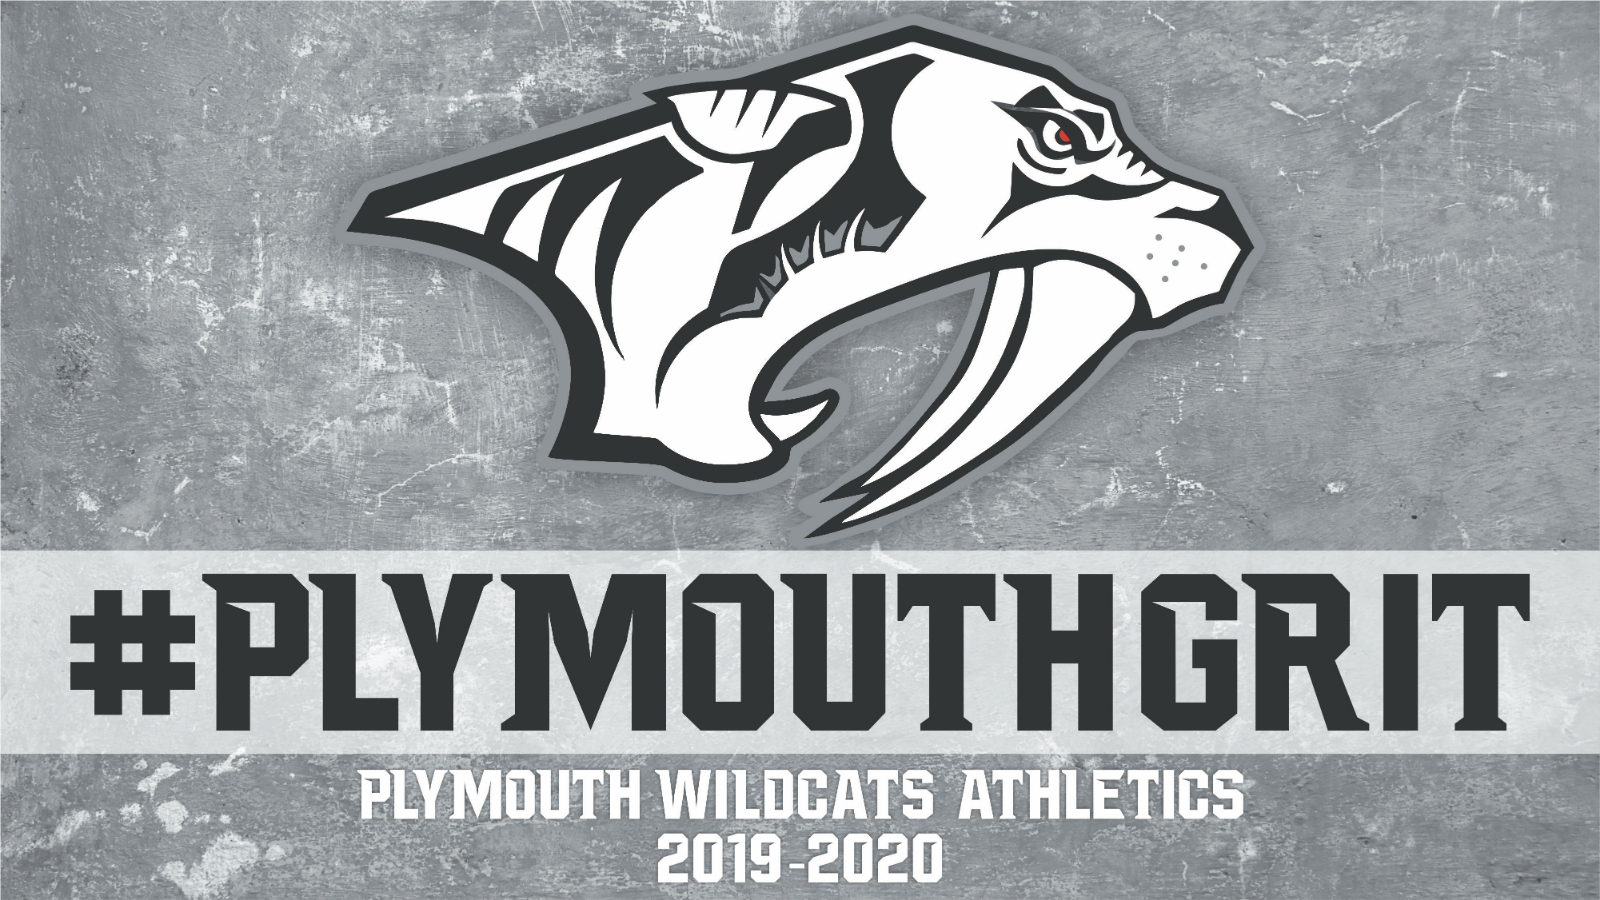 Plymouth Athletics 2019-2020 #PlymouthGRIT